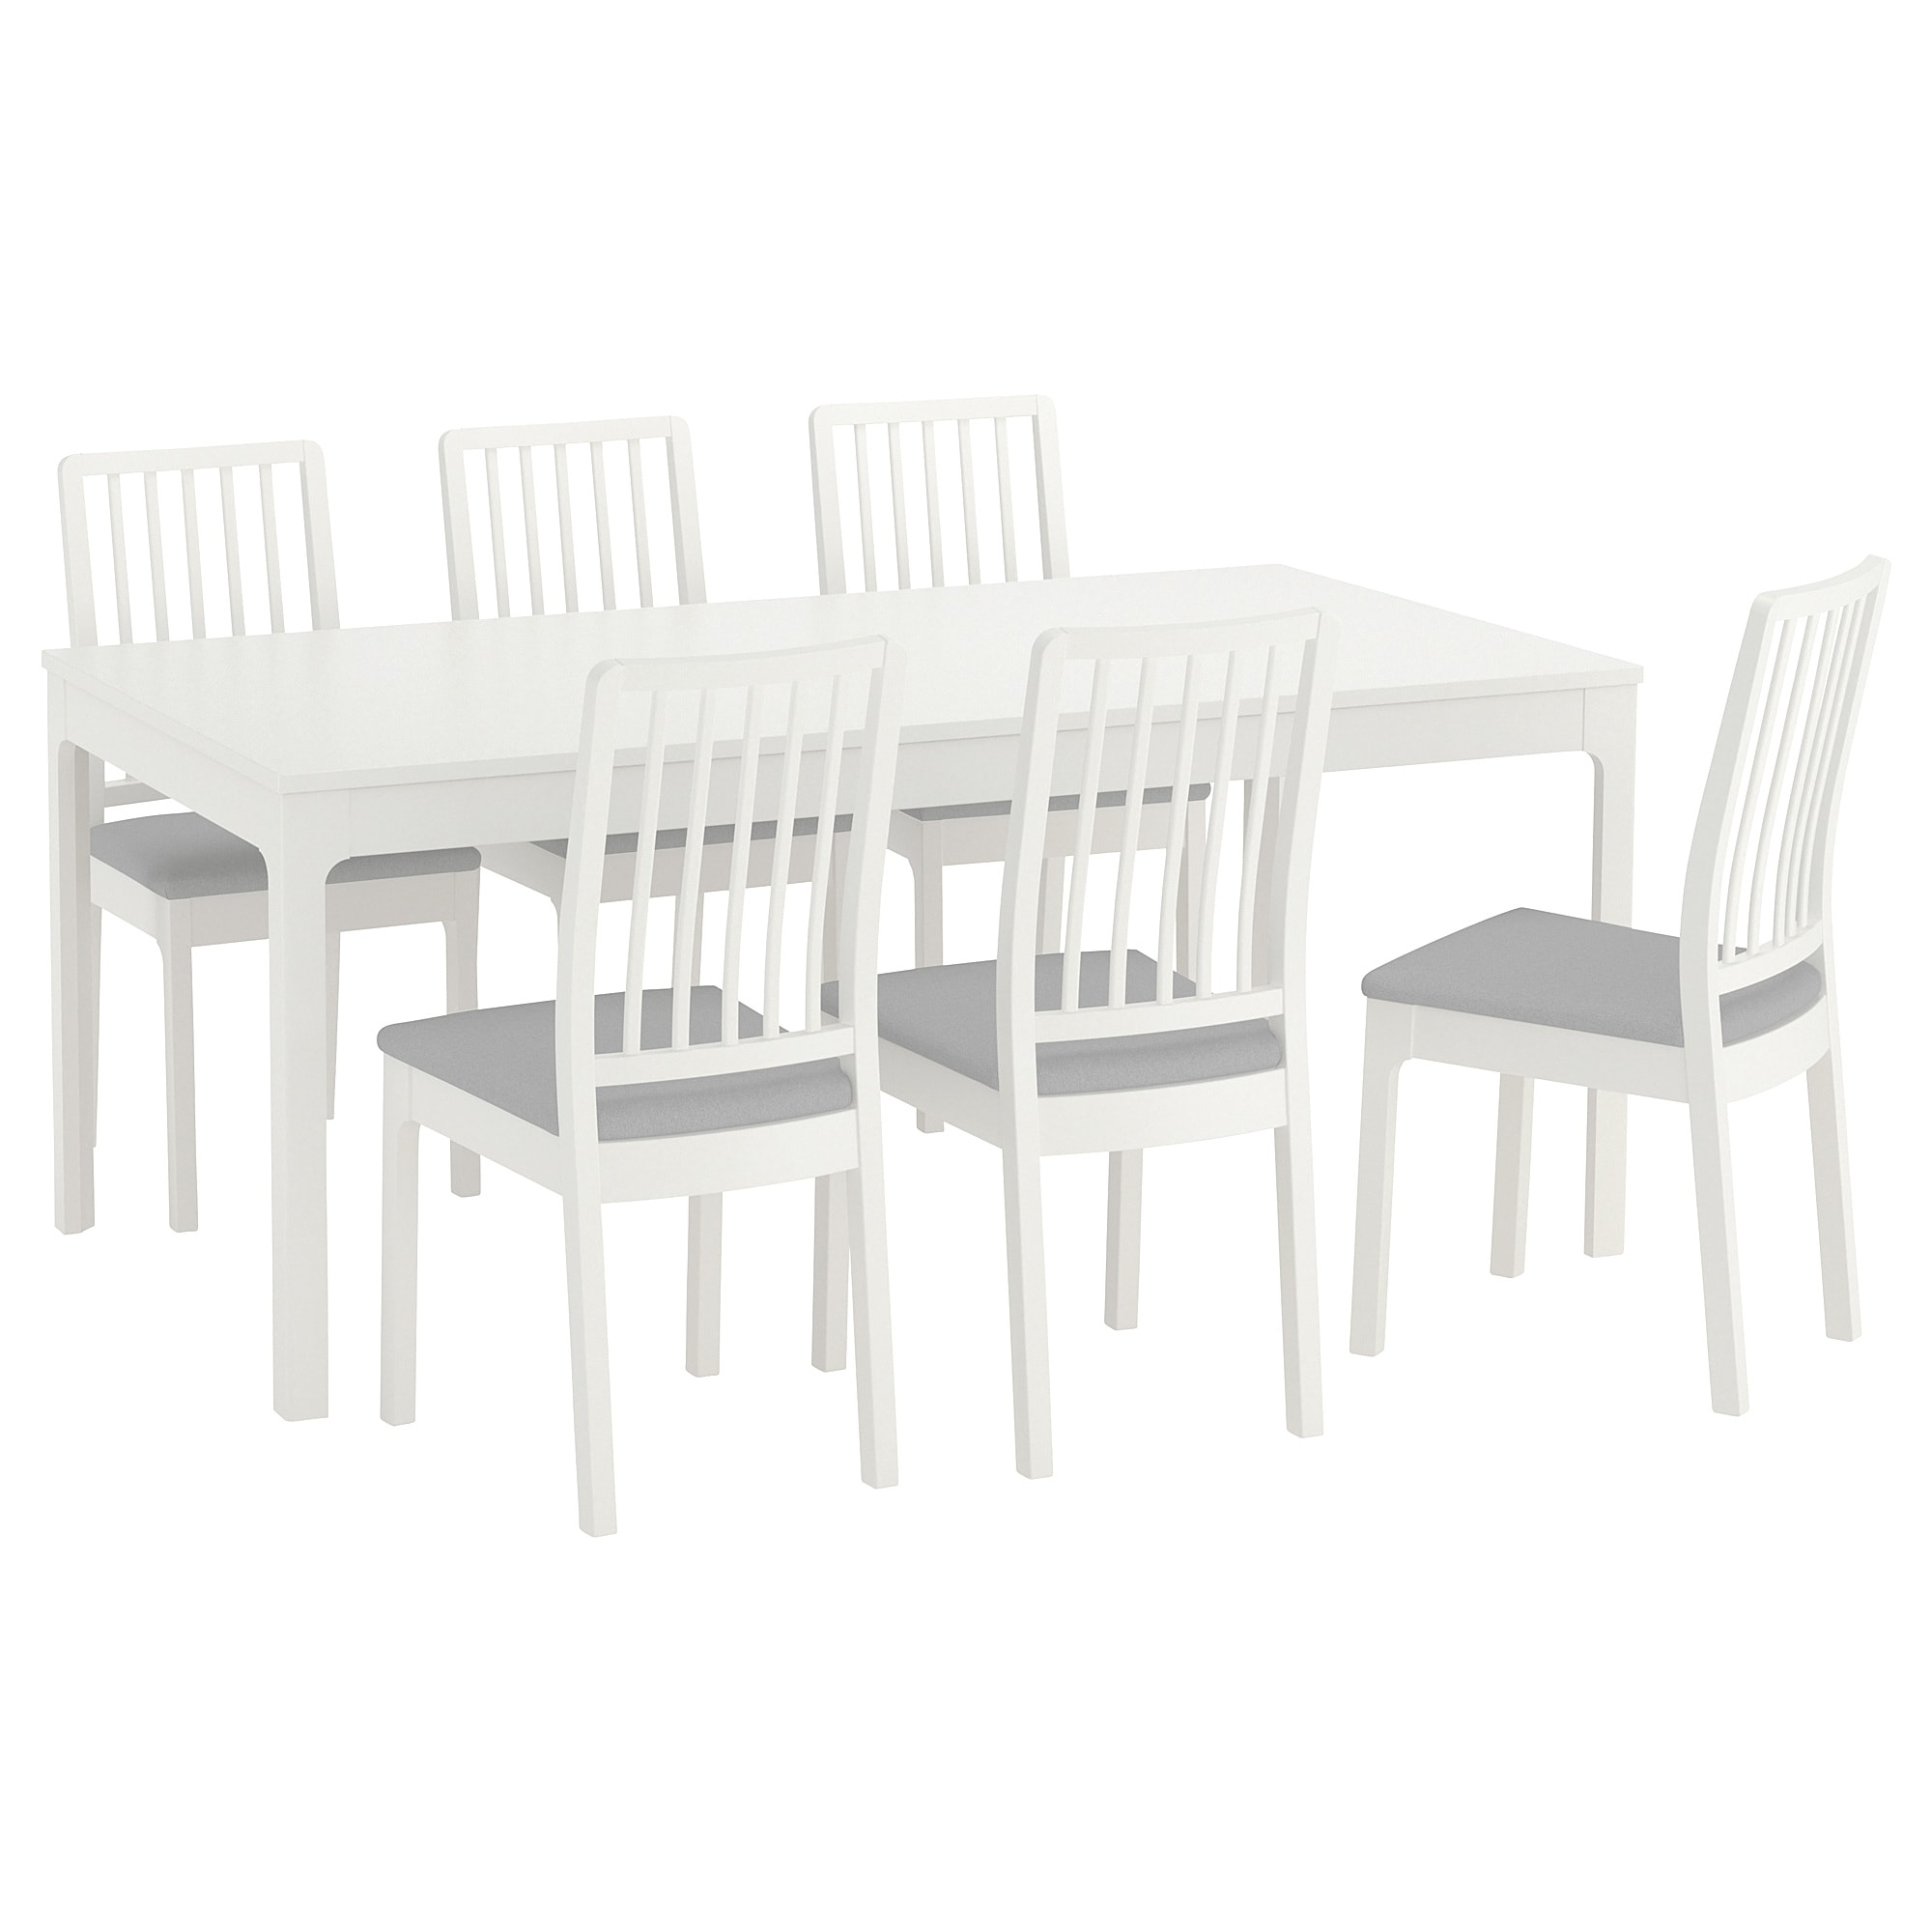 Ekedalen/ekedalen Table And 6 Chairs White/orrsta Light Grey 180/240 Throughout Well Known White Dining Tables With 6 Chairs (Gallery 1 of 25)